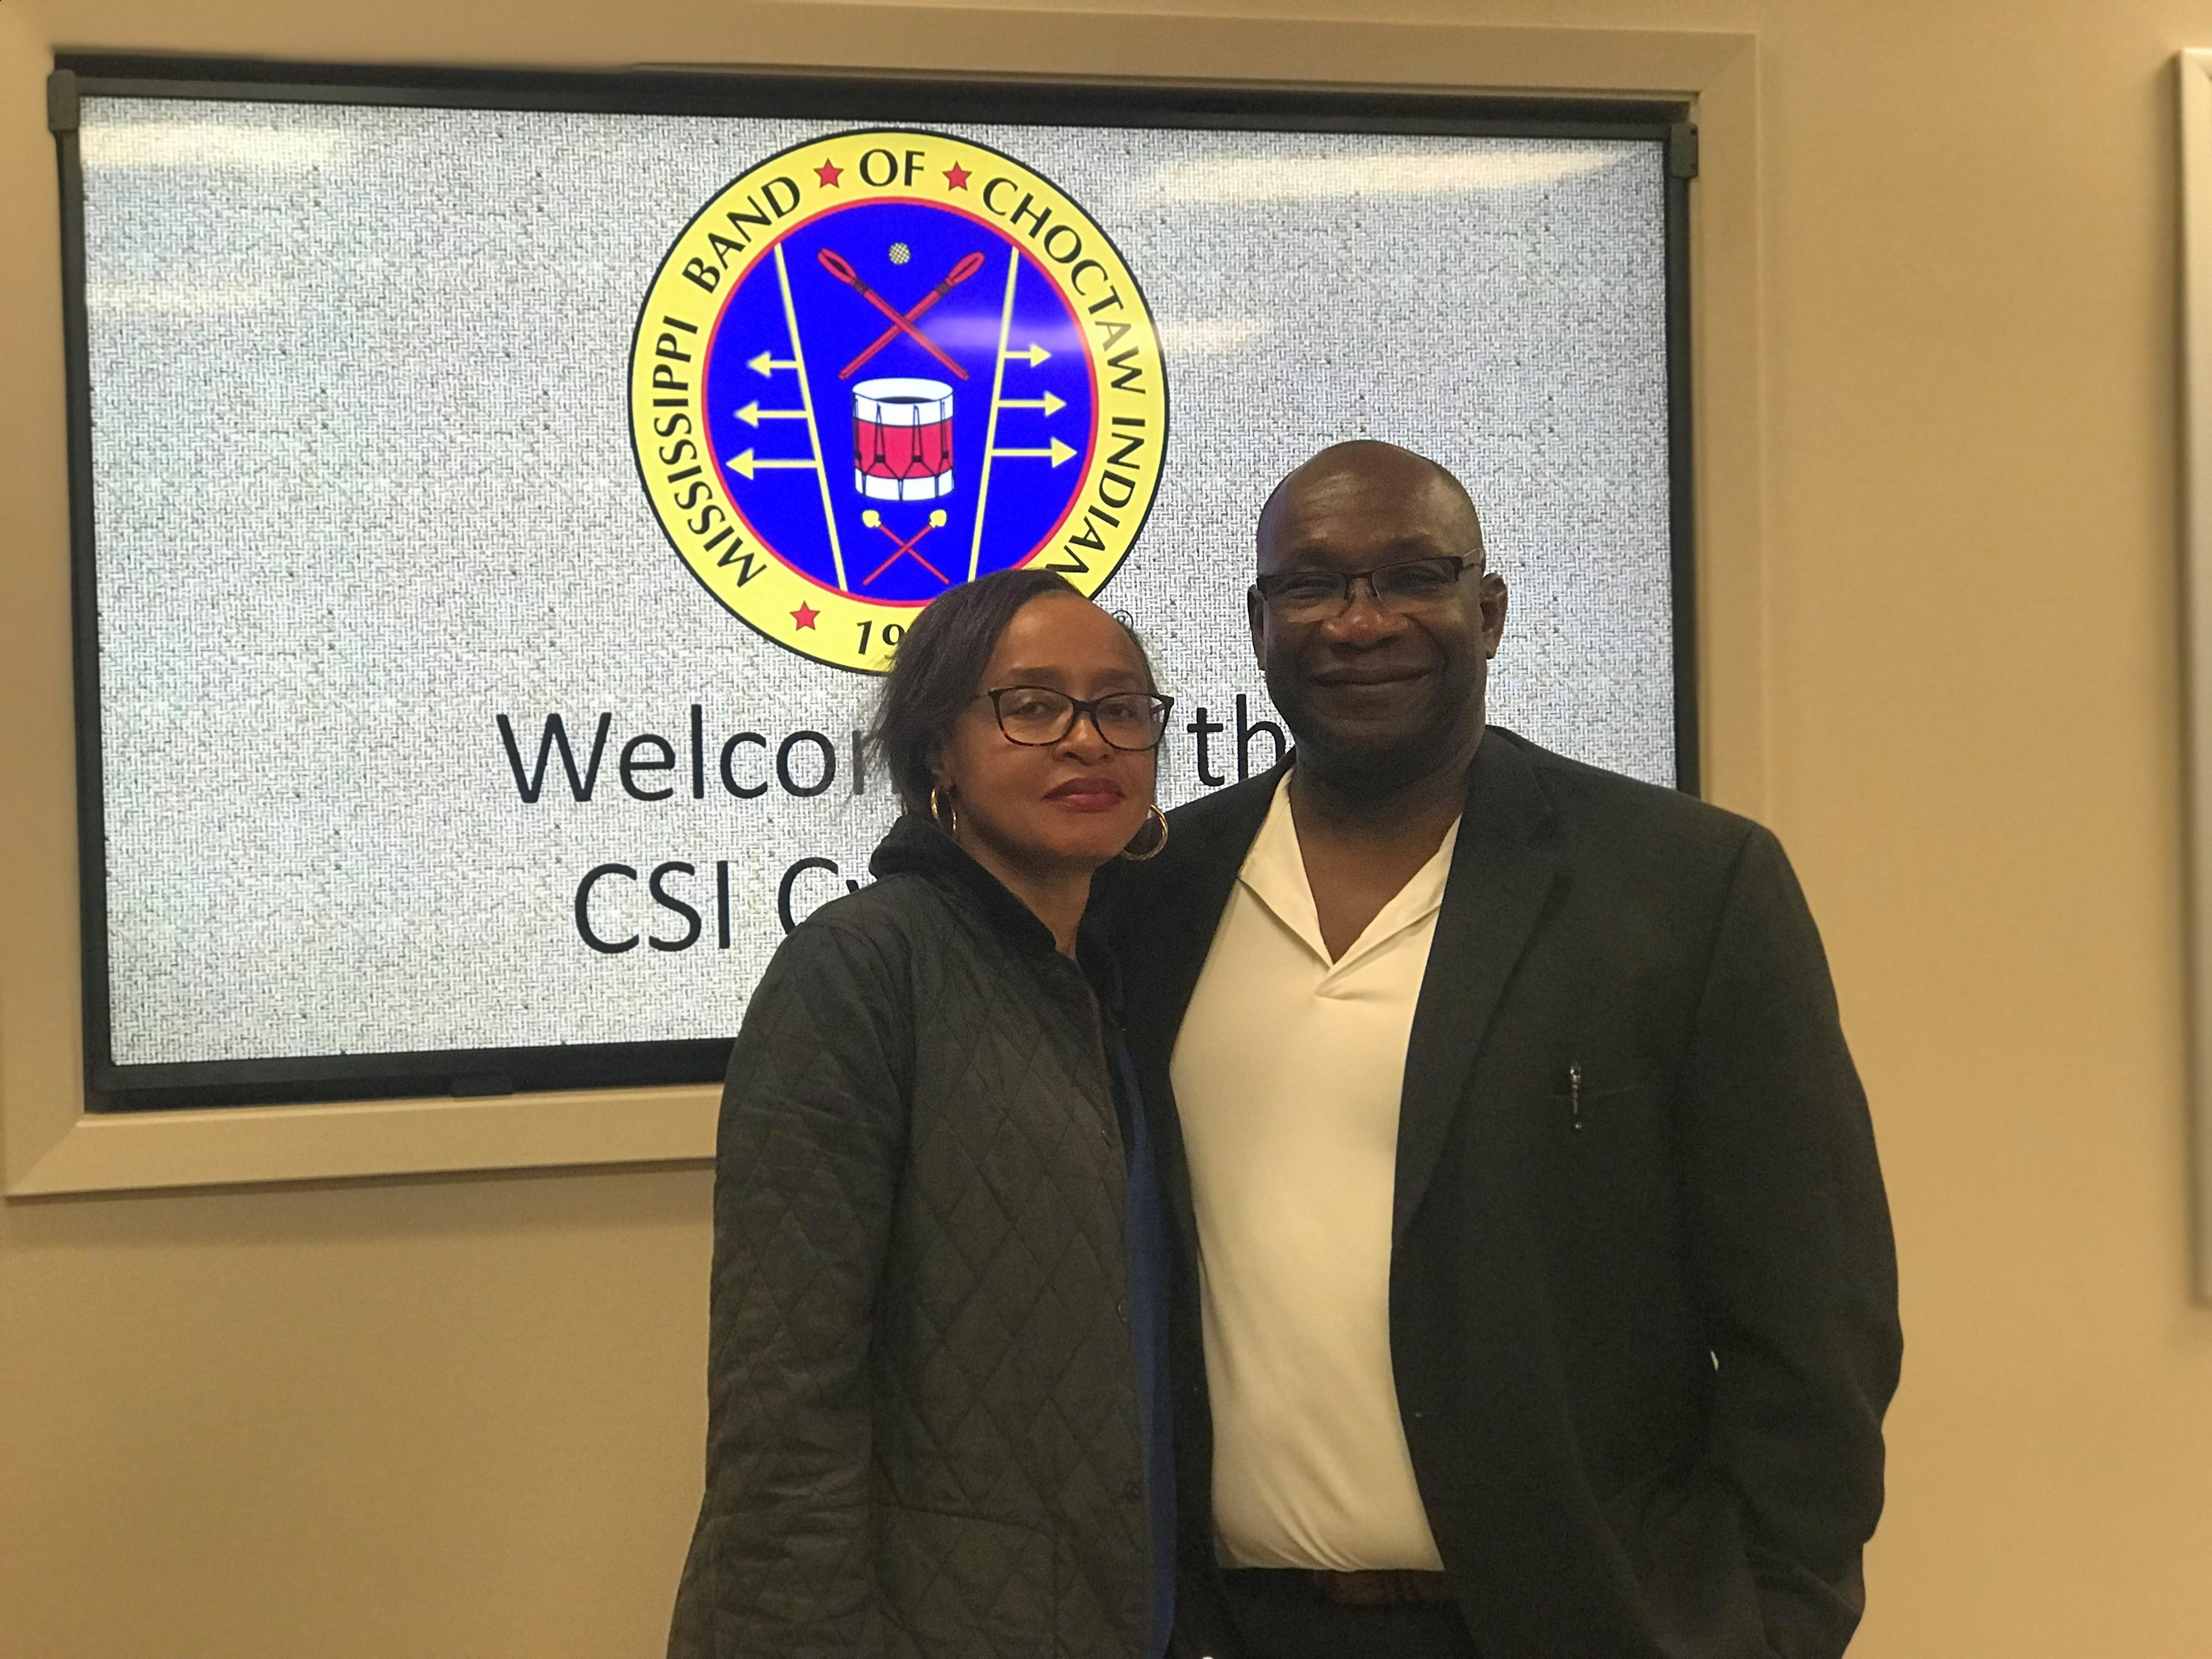 J.R. Richardson of Cockrell, Webb & Associates LLC and his wife on their visit to CSI Lab